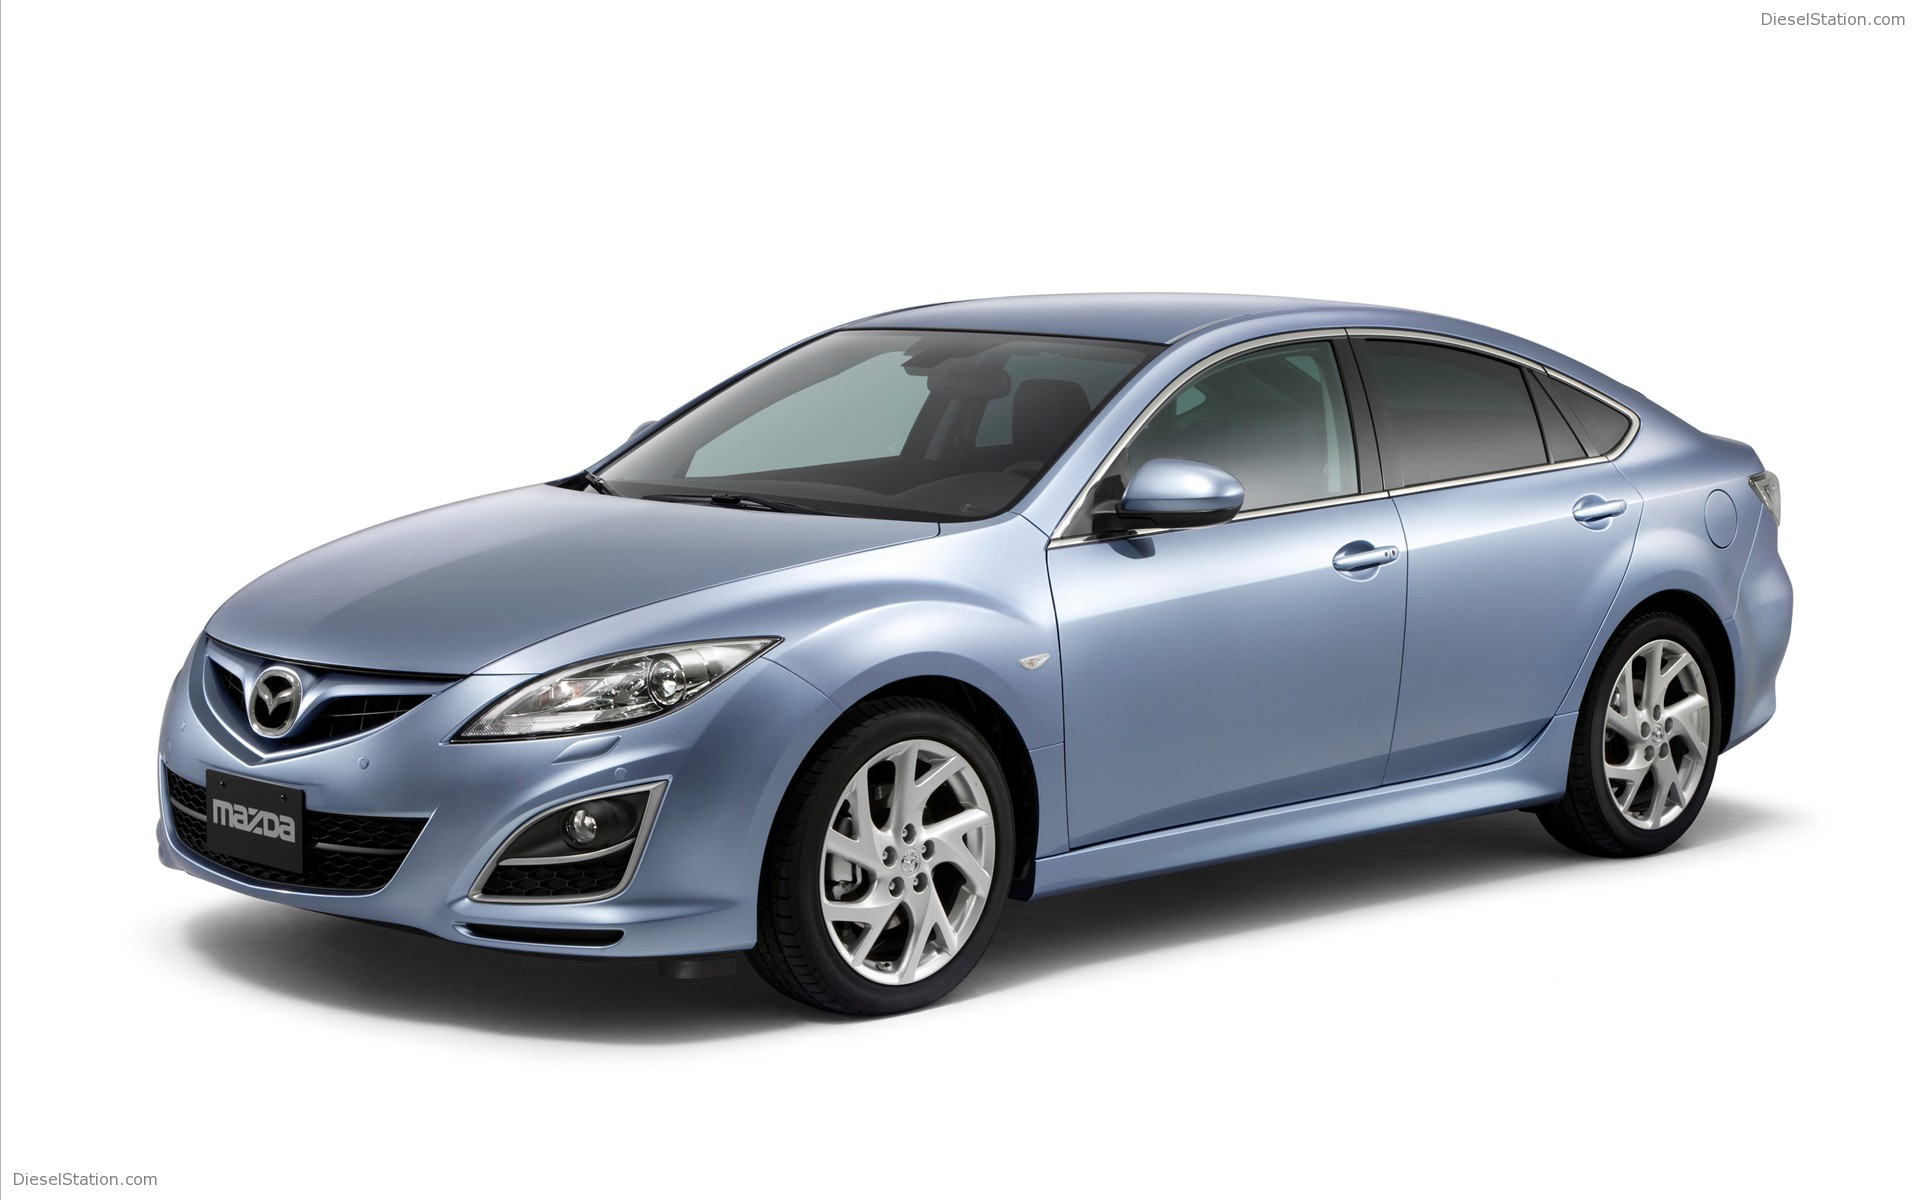 Mazda 6 2000 Review Amazing Pictures And Images Look At The Car